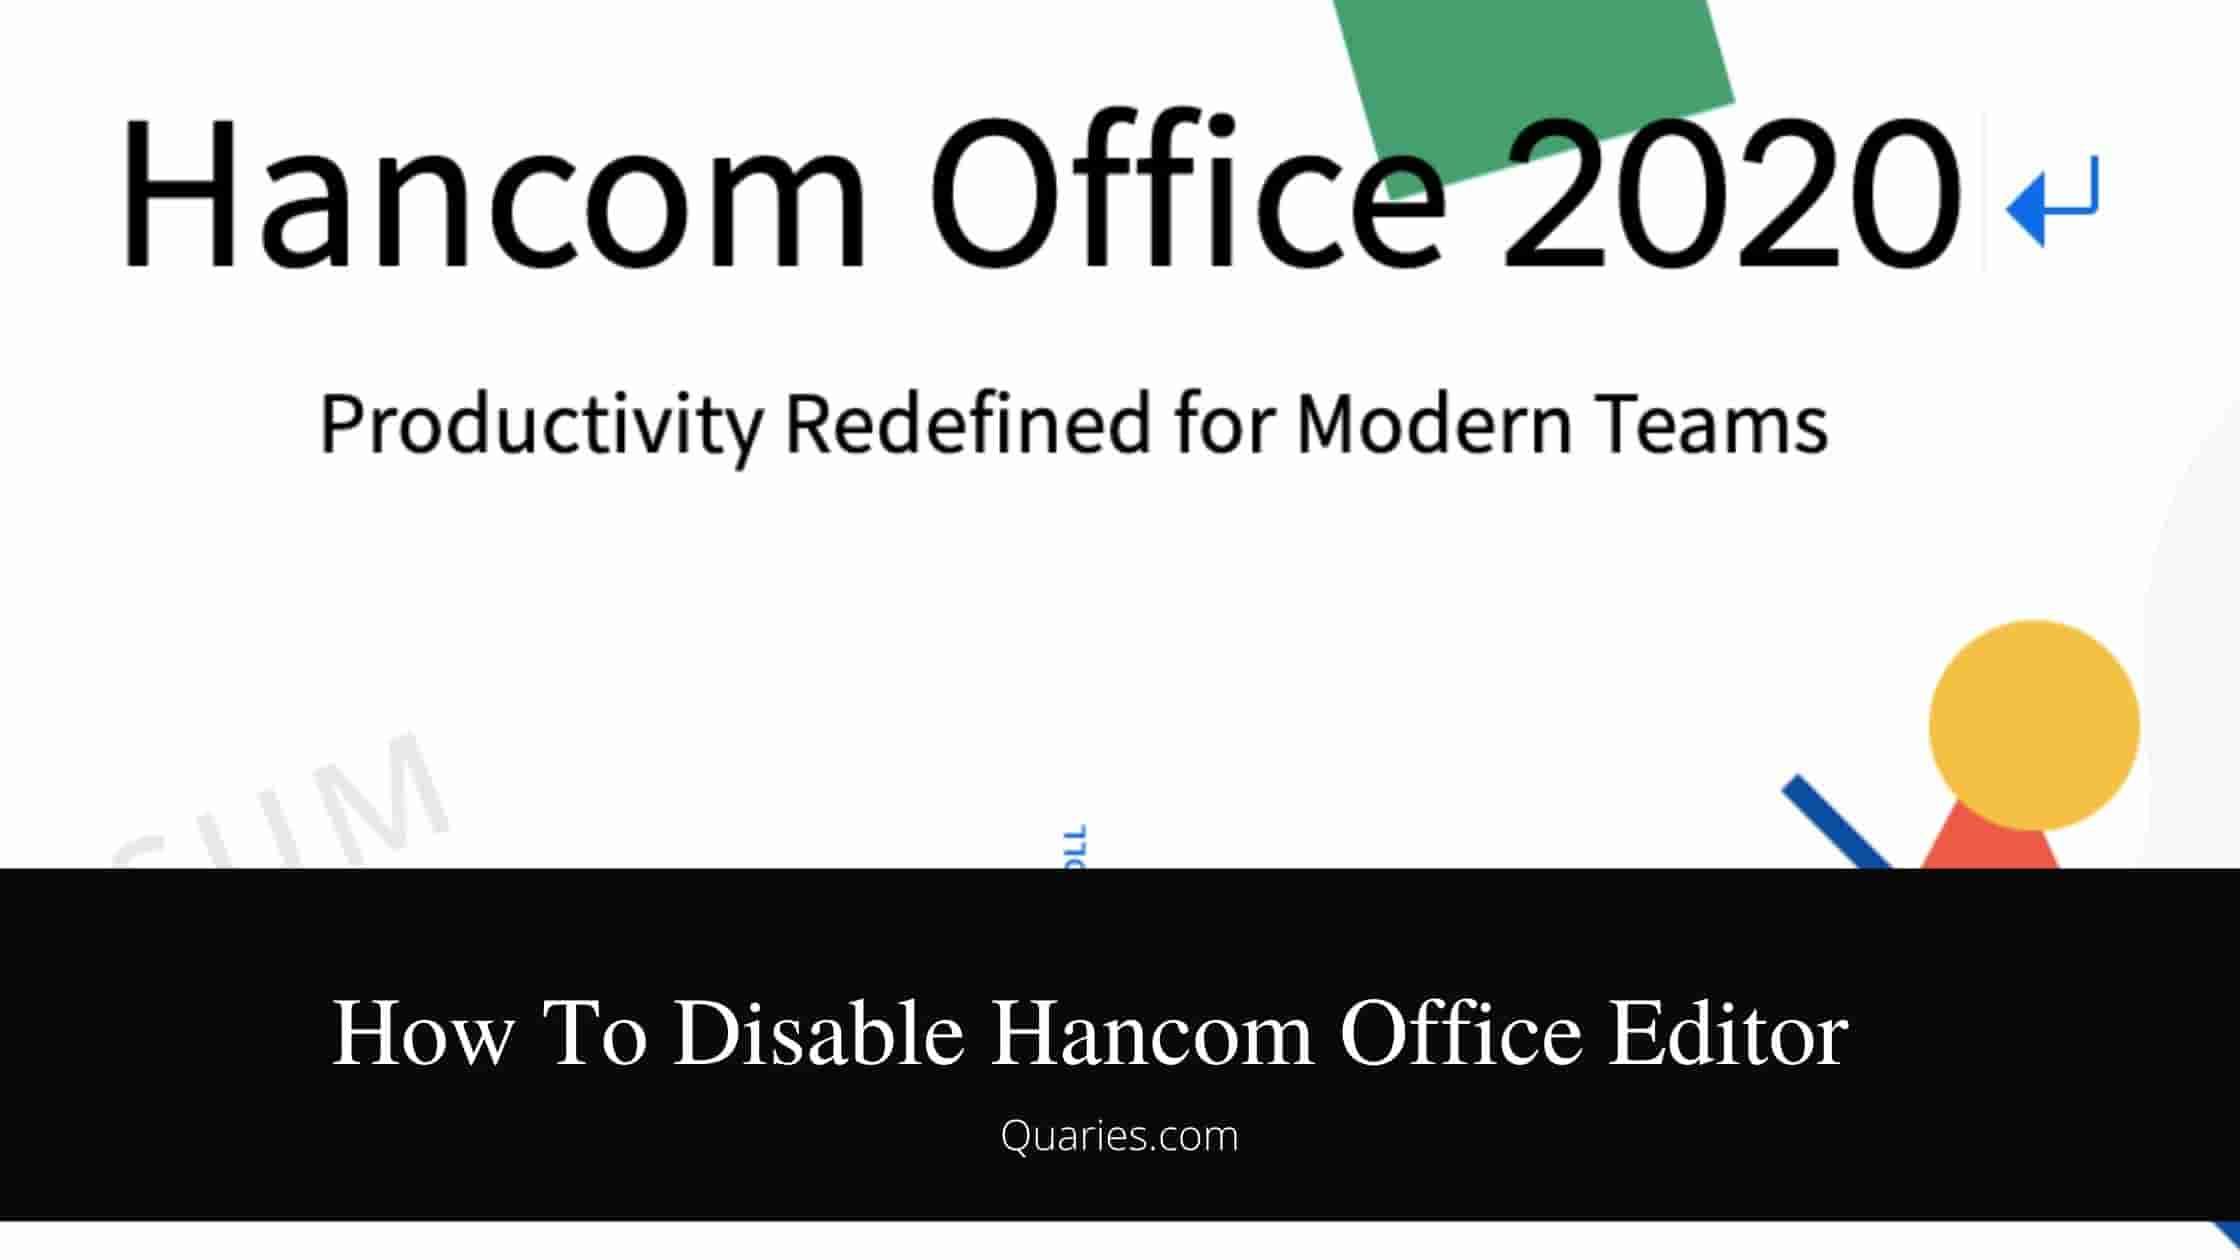 How To Disable Hancom Office Editor